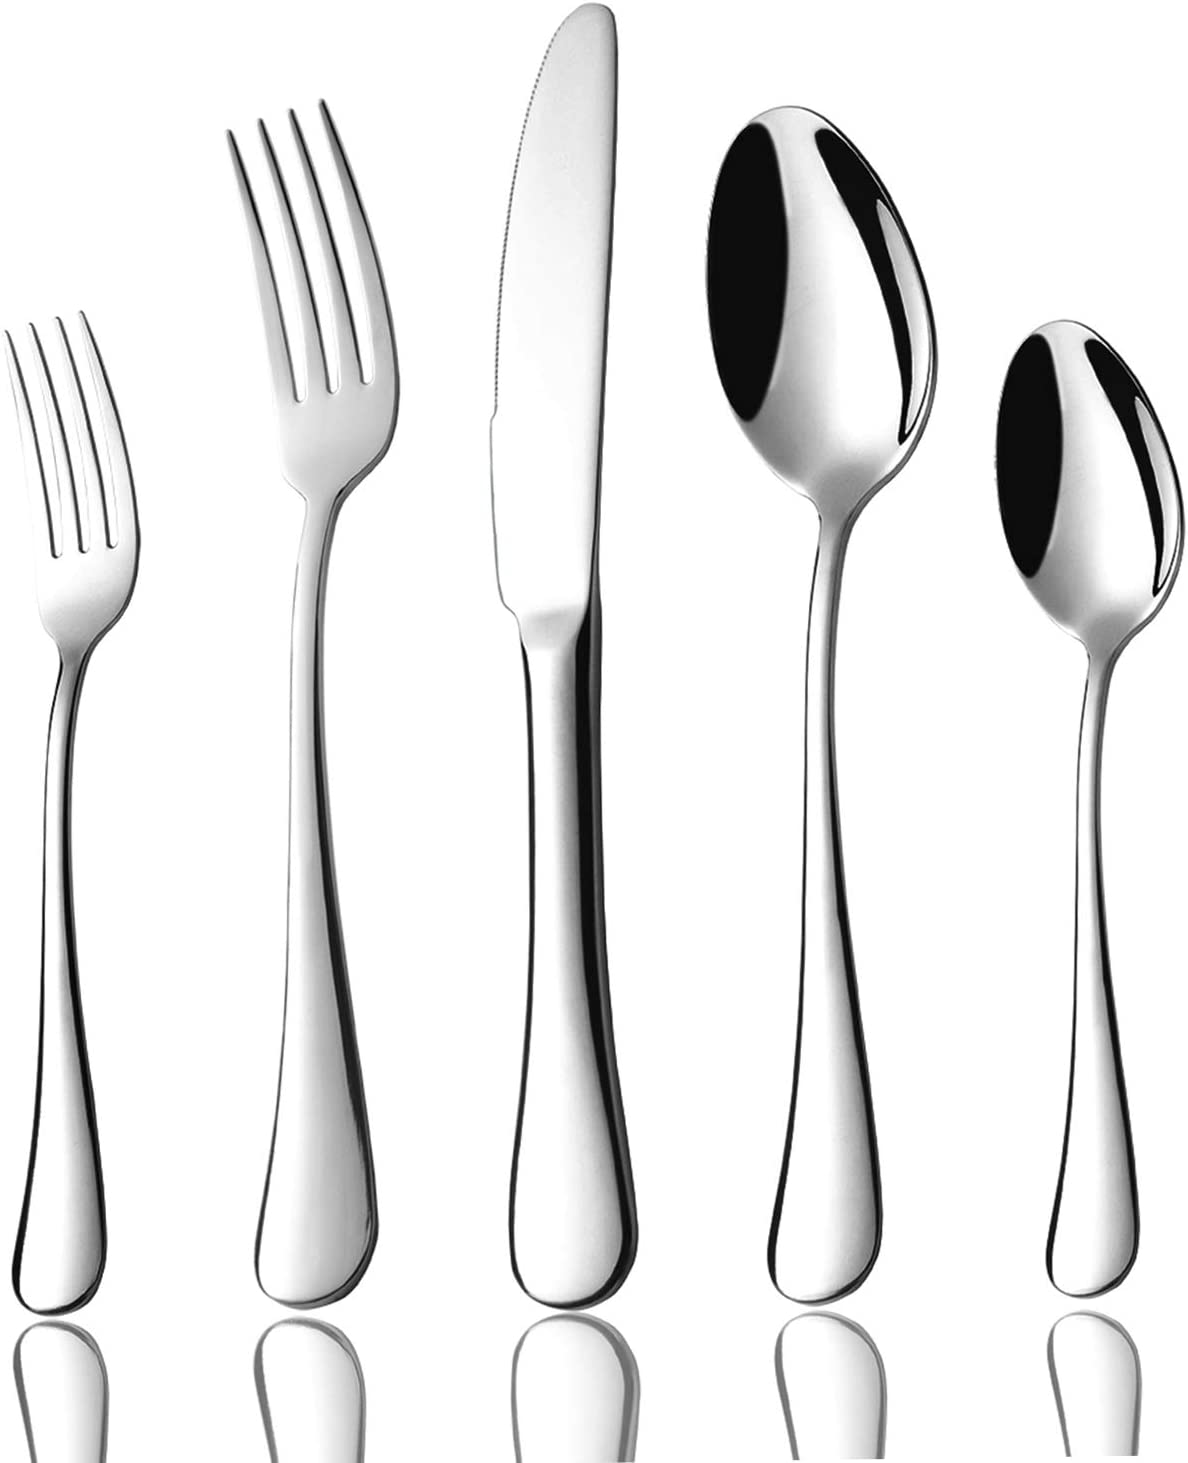 Silverware Set for 4, Flatware 20-Piece 18/10 Stainless Steel Cutlery Eating Utensils Heavy Duty Tableware with Dinner Spoon Fork Knife Set Weighted Dishwasher Safe Mirror Polished